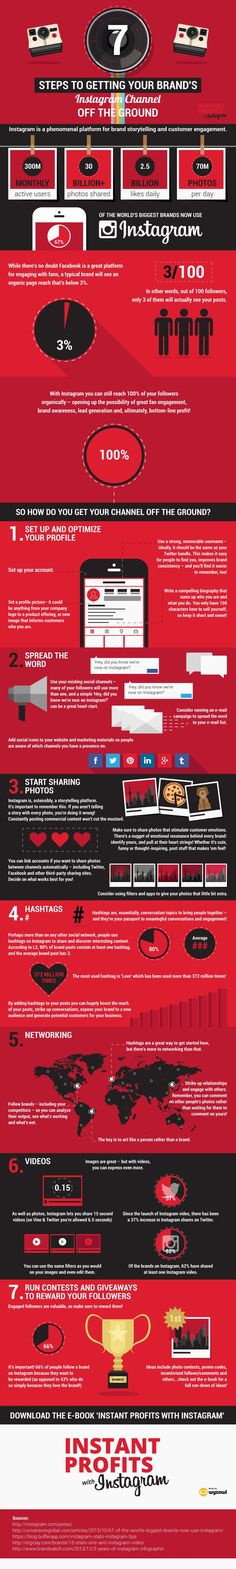 7 Steps To Get Your Brand's Instagram Off The Ground #infographic #smm #socialmedia #in